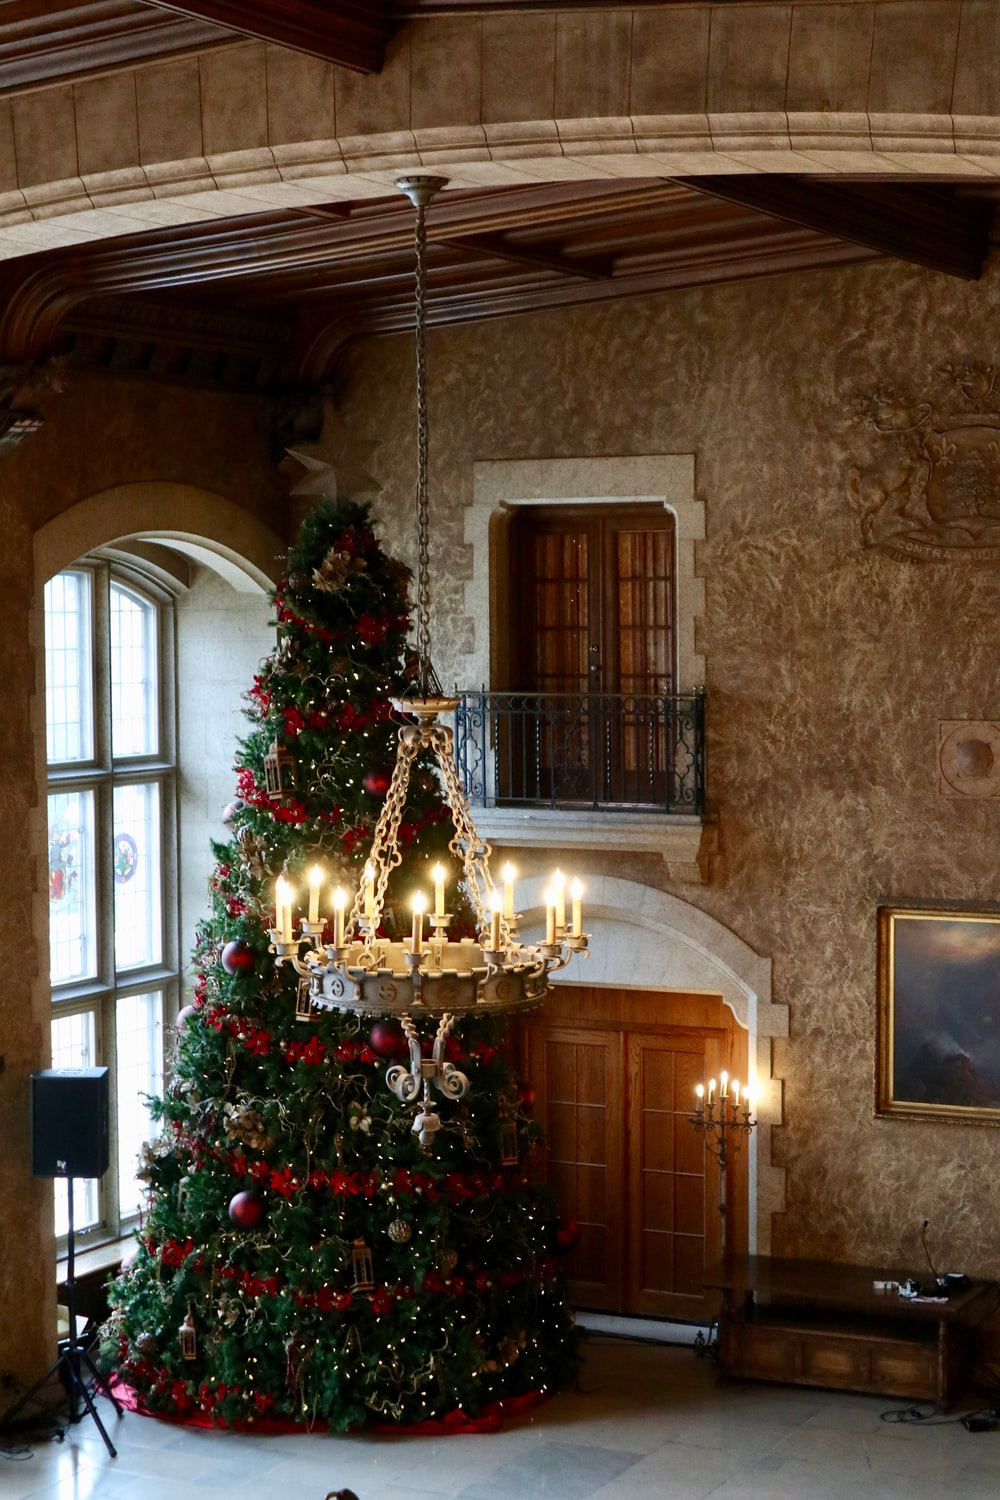 Christmas tree beside closed doors and near chandelier turned on